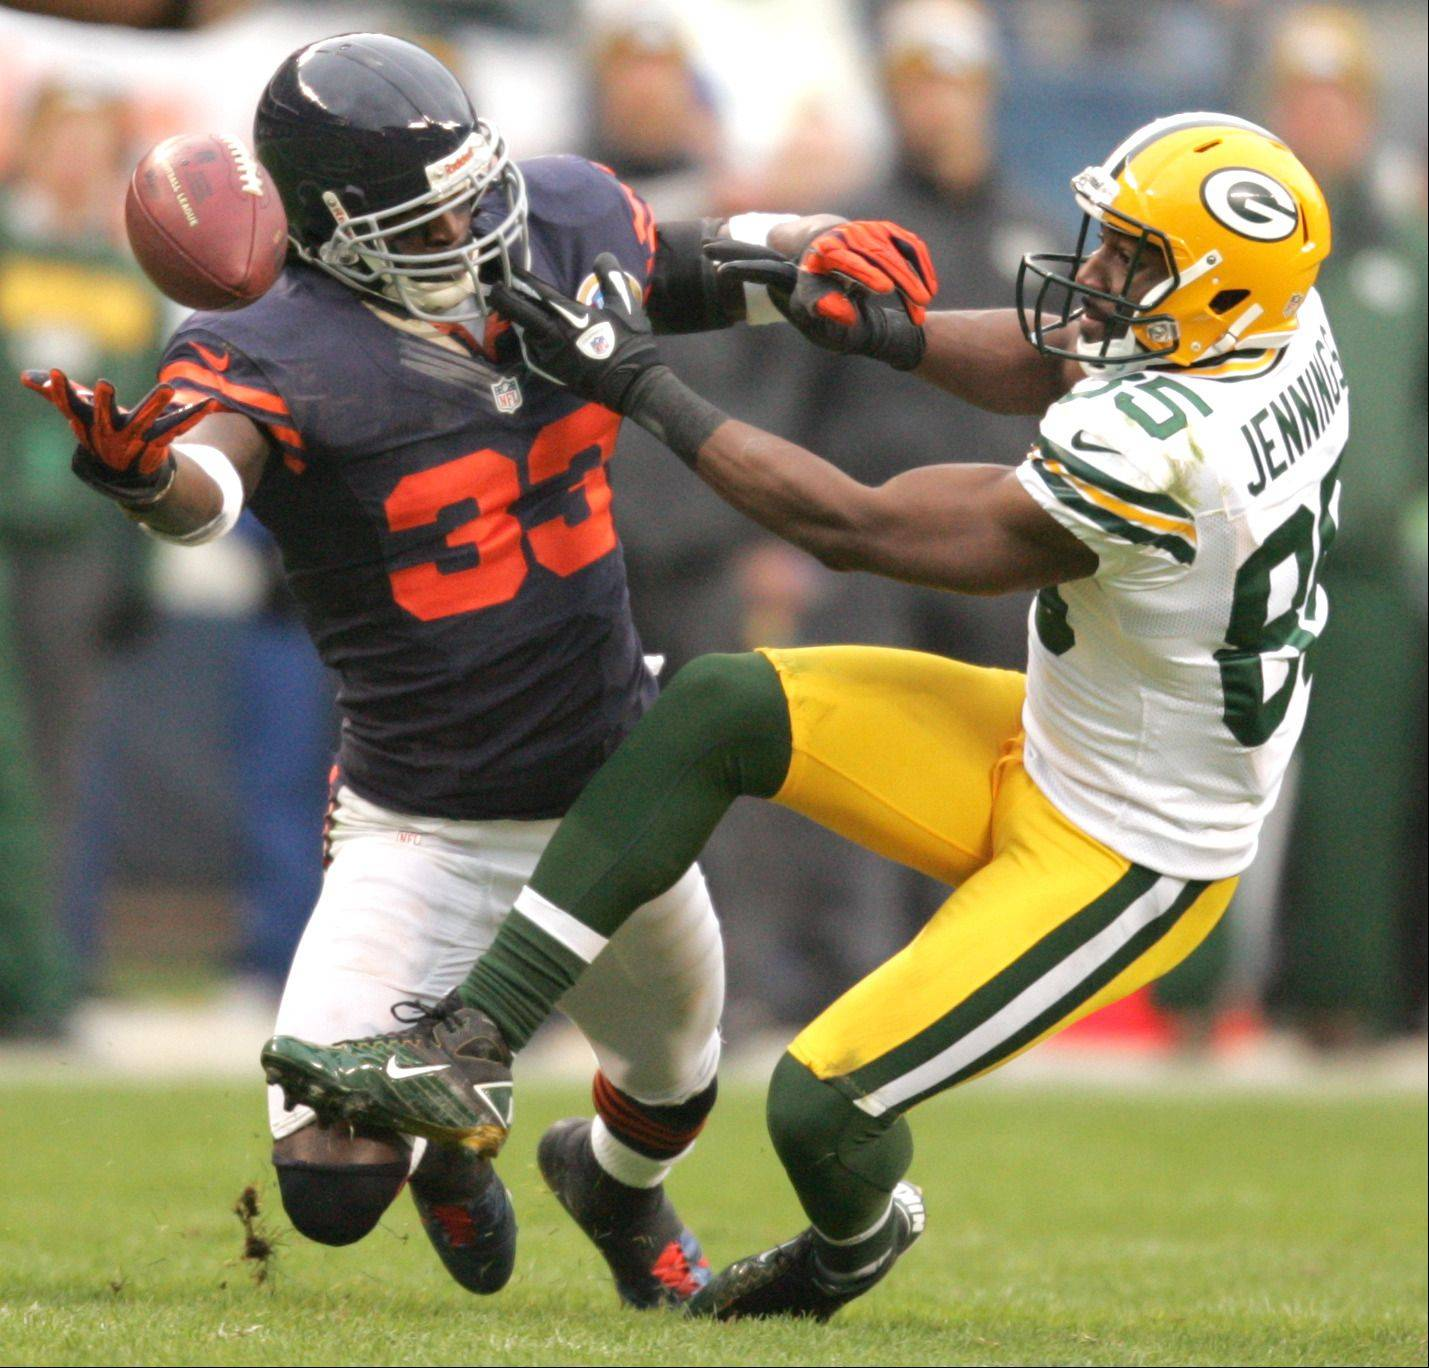 Chicago Bears cornerback Charles Tillman (33), left, and Green Bay Packers wide receiver Greg Jennings (85) get tangled up on a pass from Green Bay Packers quarterback Aaron Rodgers (12) during Sunday's game at Soldier Field in Chicago. The pass fell incomplete.